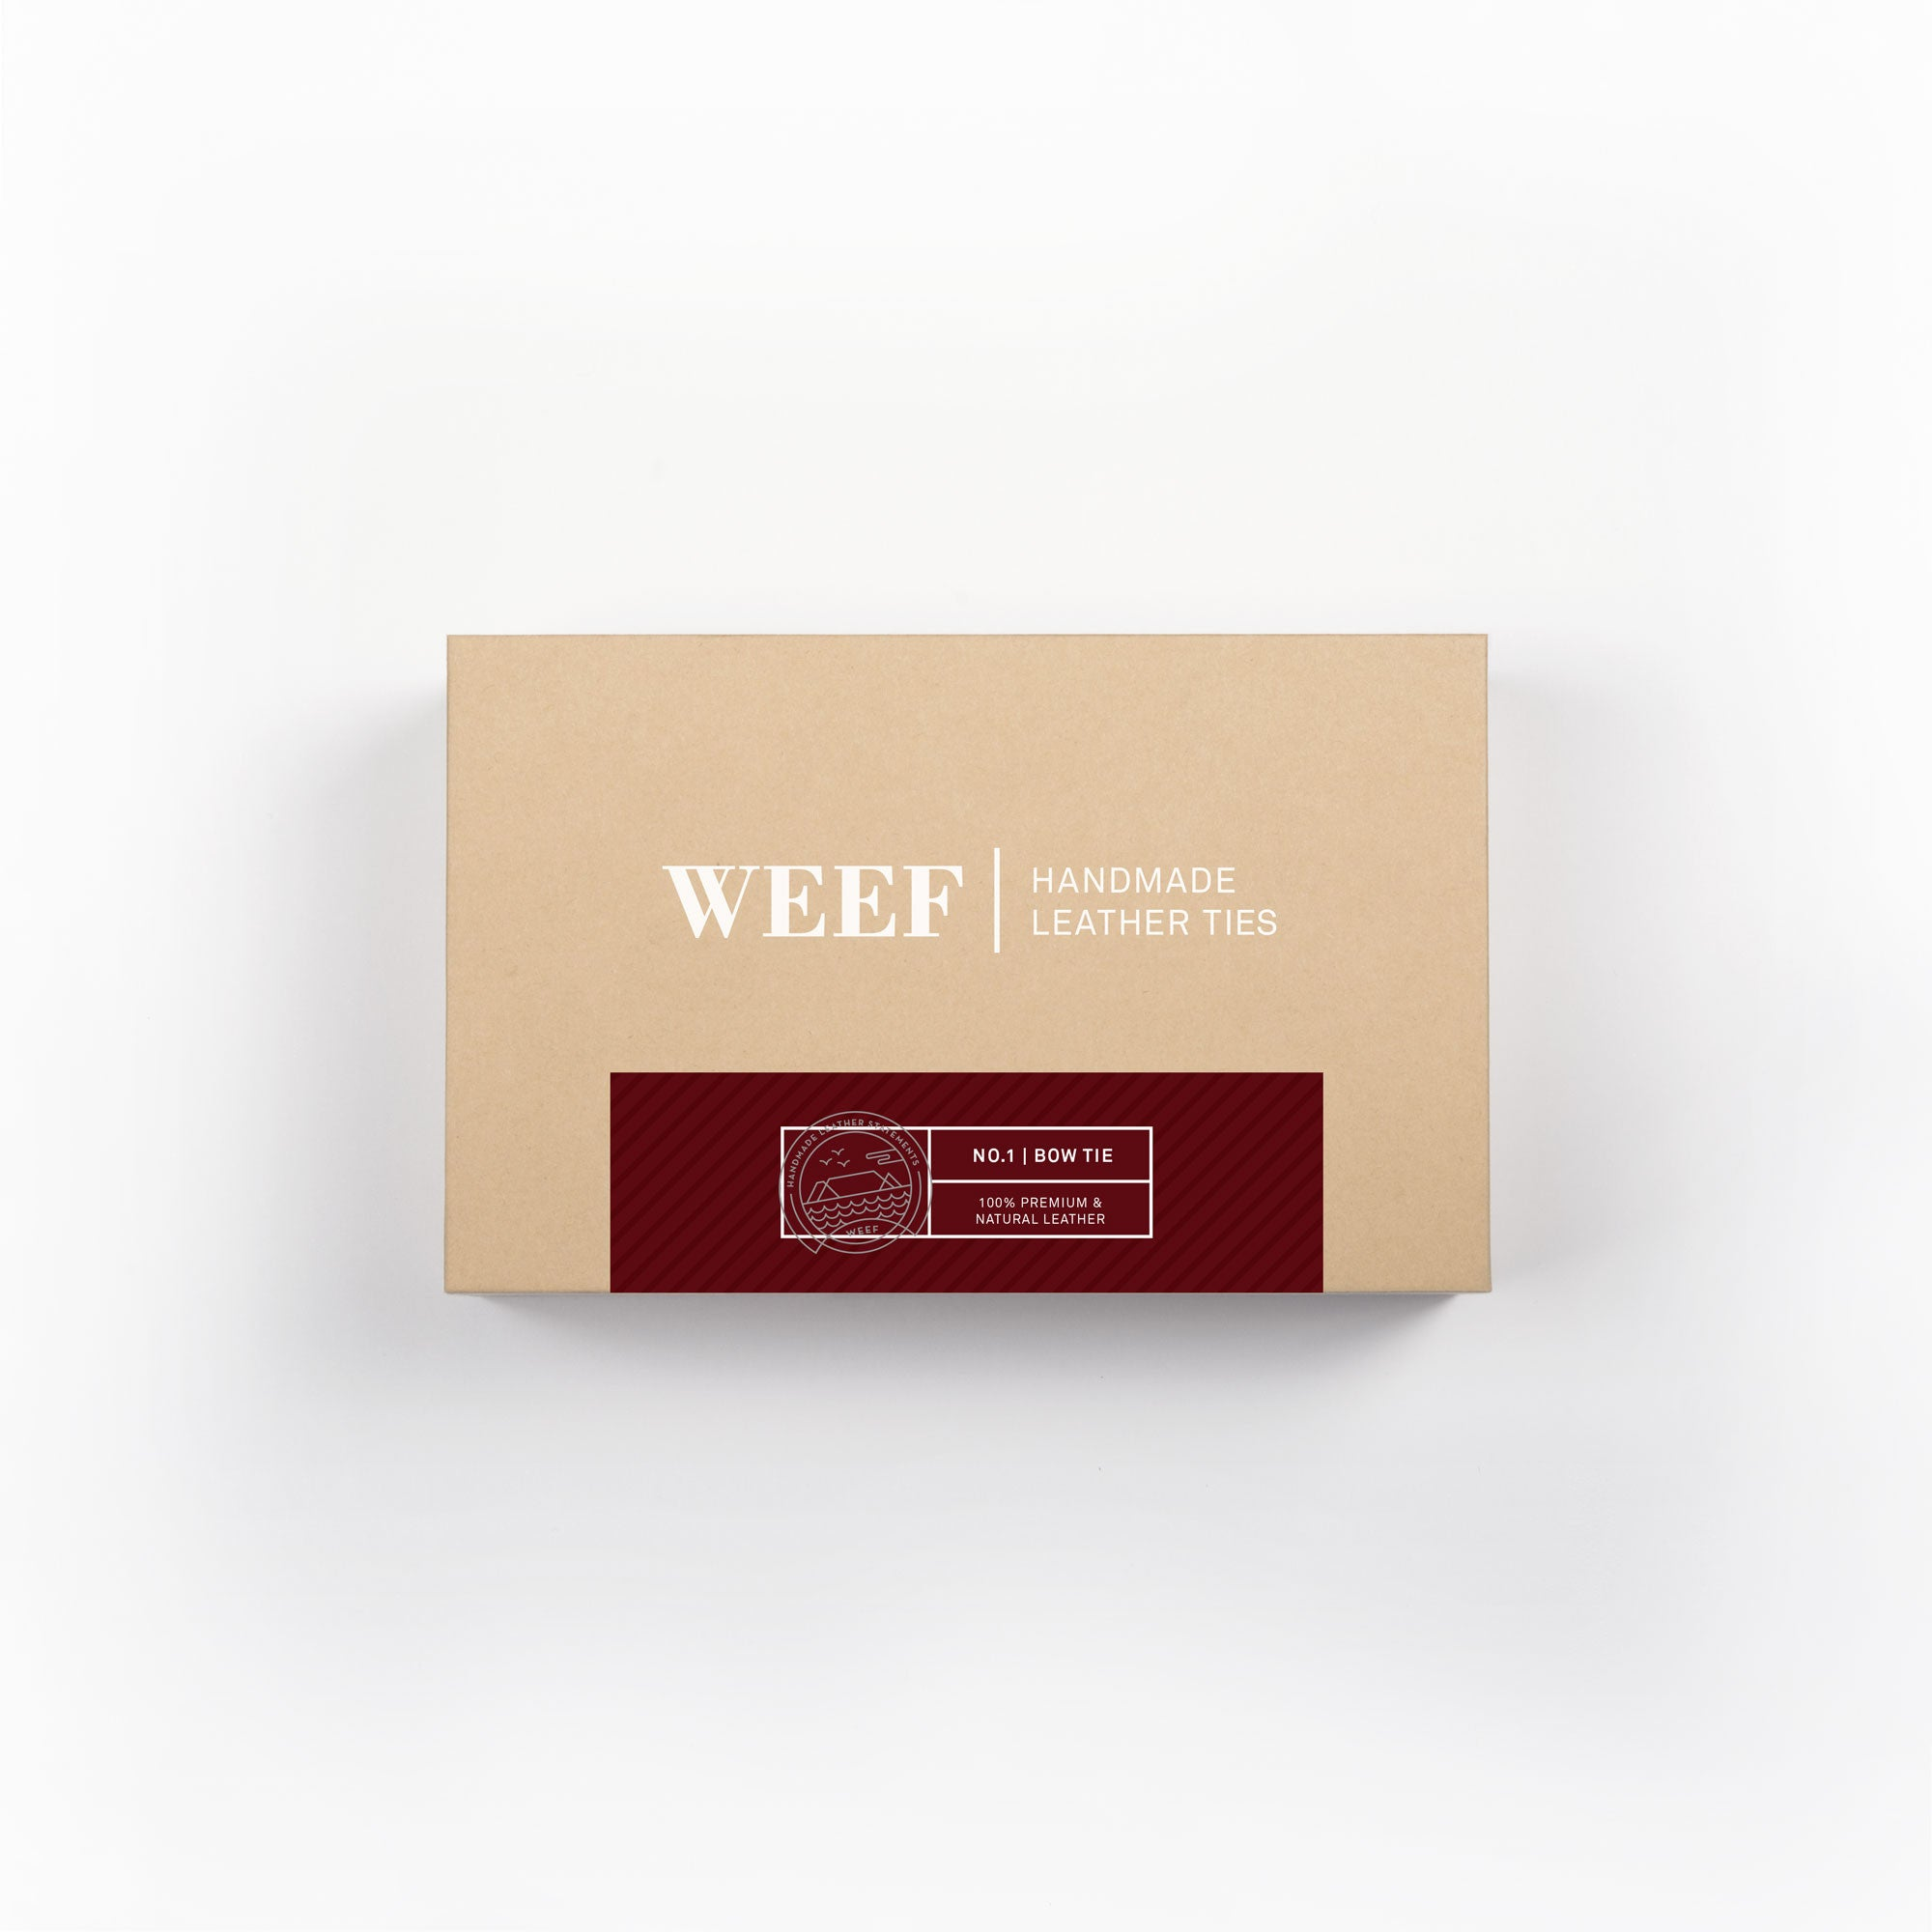 This is the premium packaging box of the oxblood red WEEF handmade leather bow tie.